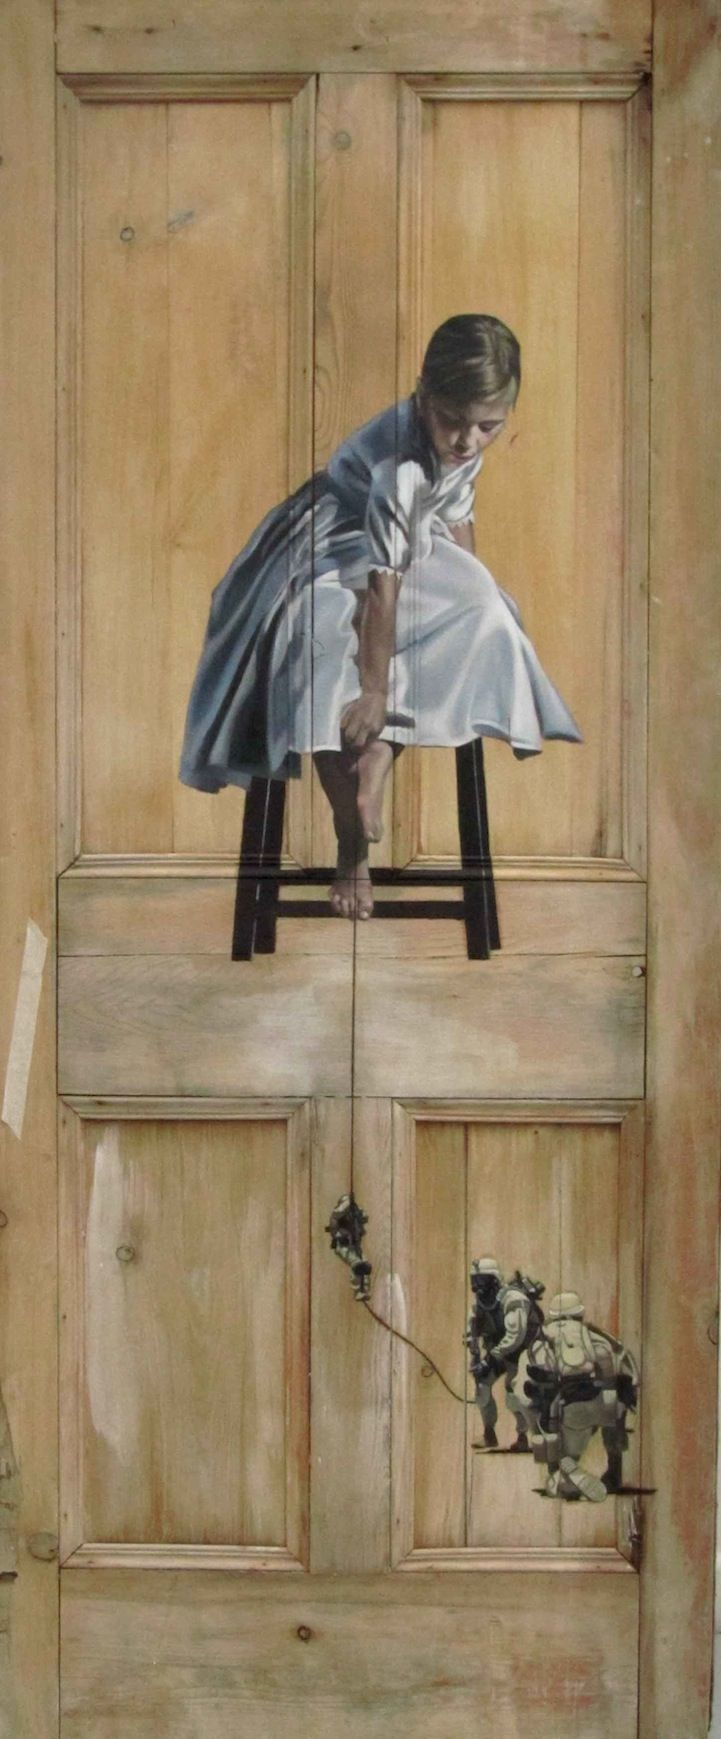 Intriguing Old Paintings on Worn Doors - My Modern Metropolis & 2521 best arte callejero images on Pinterest | Graffiti Street art ...